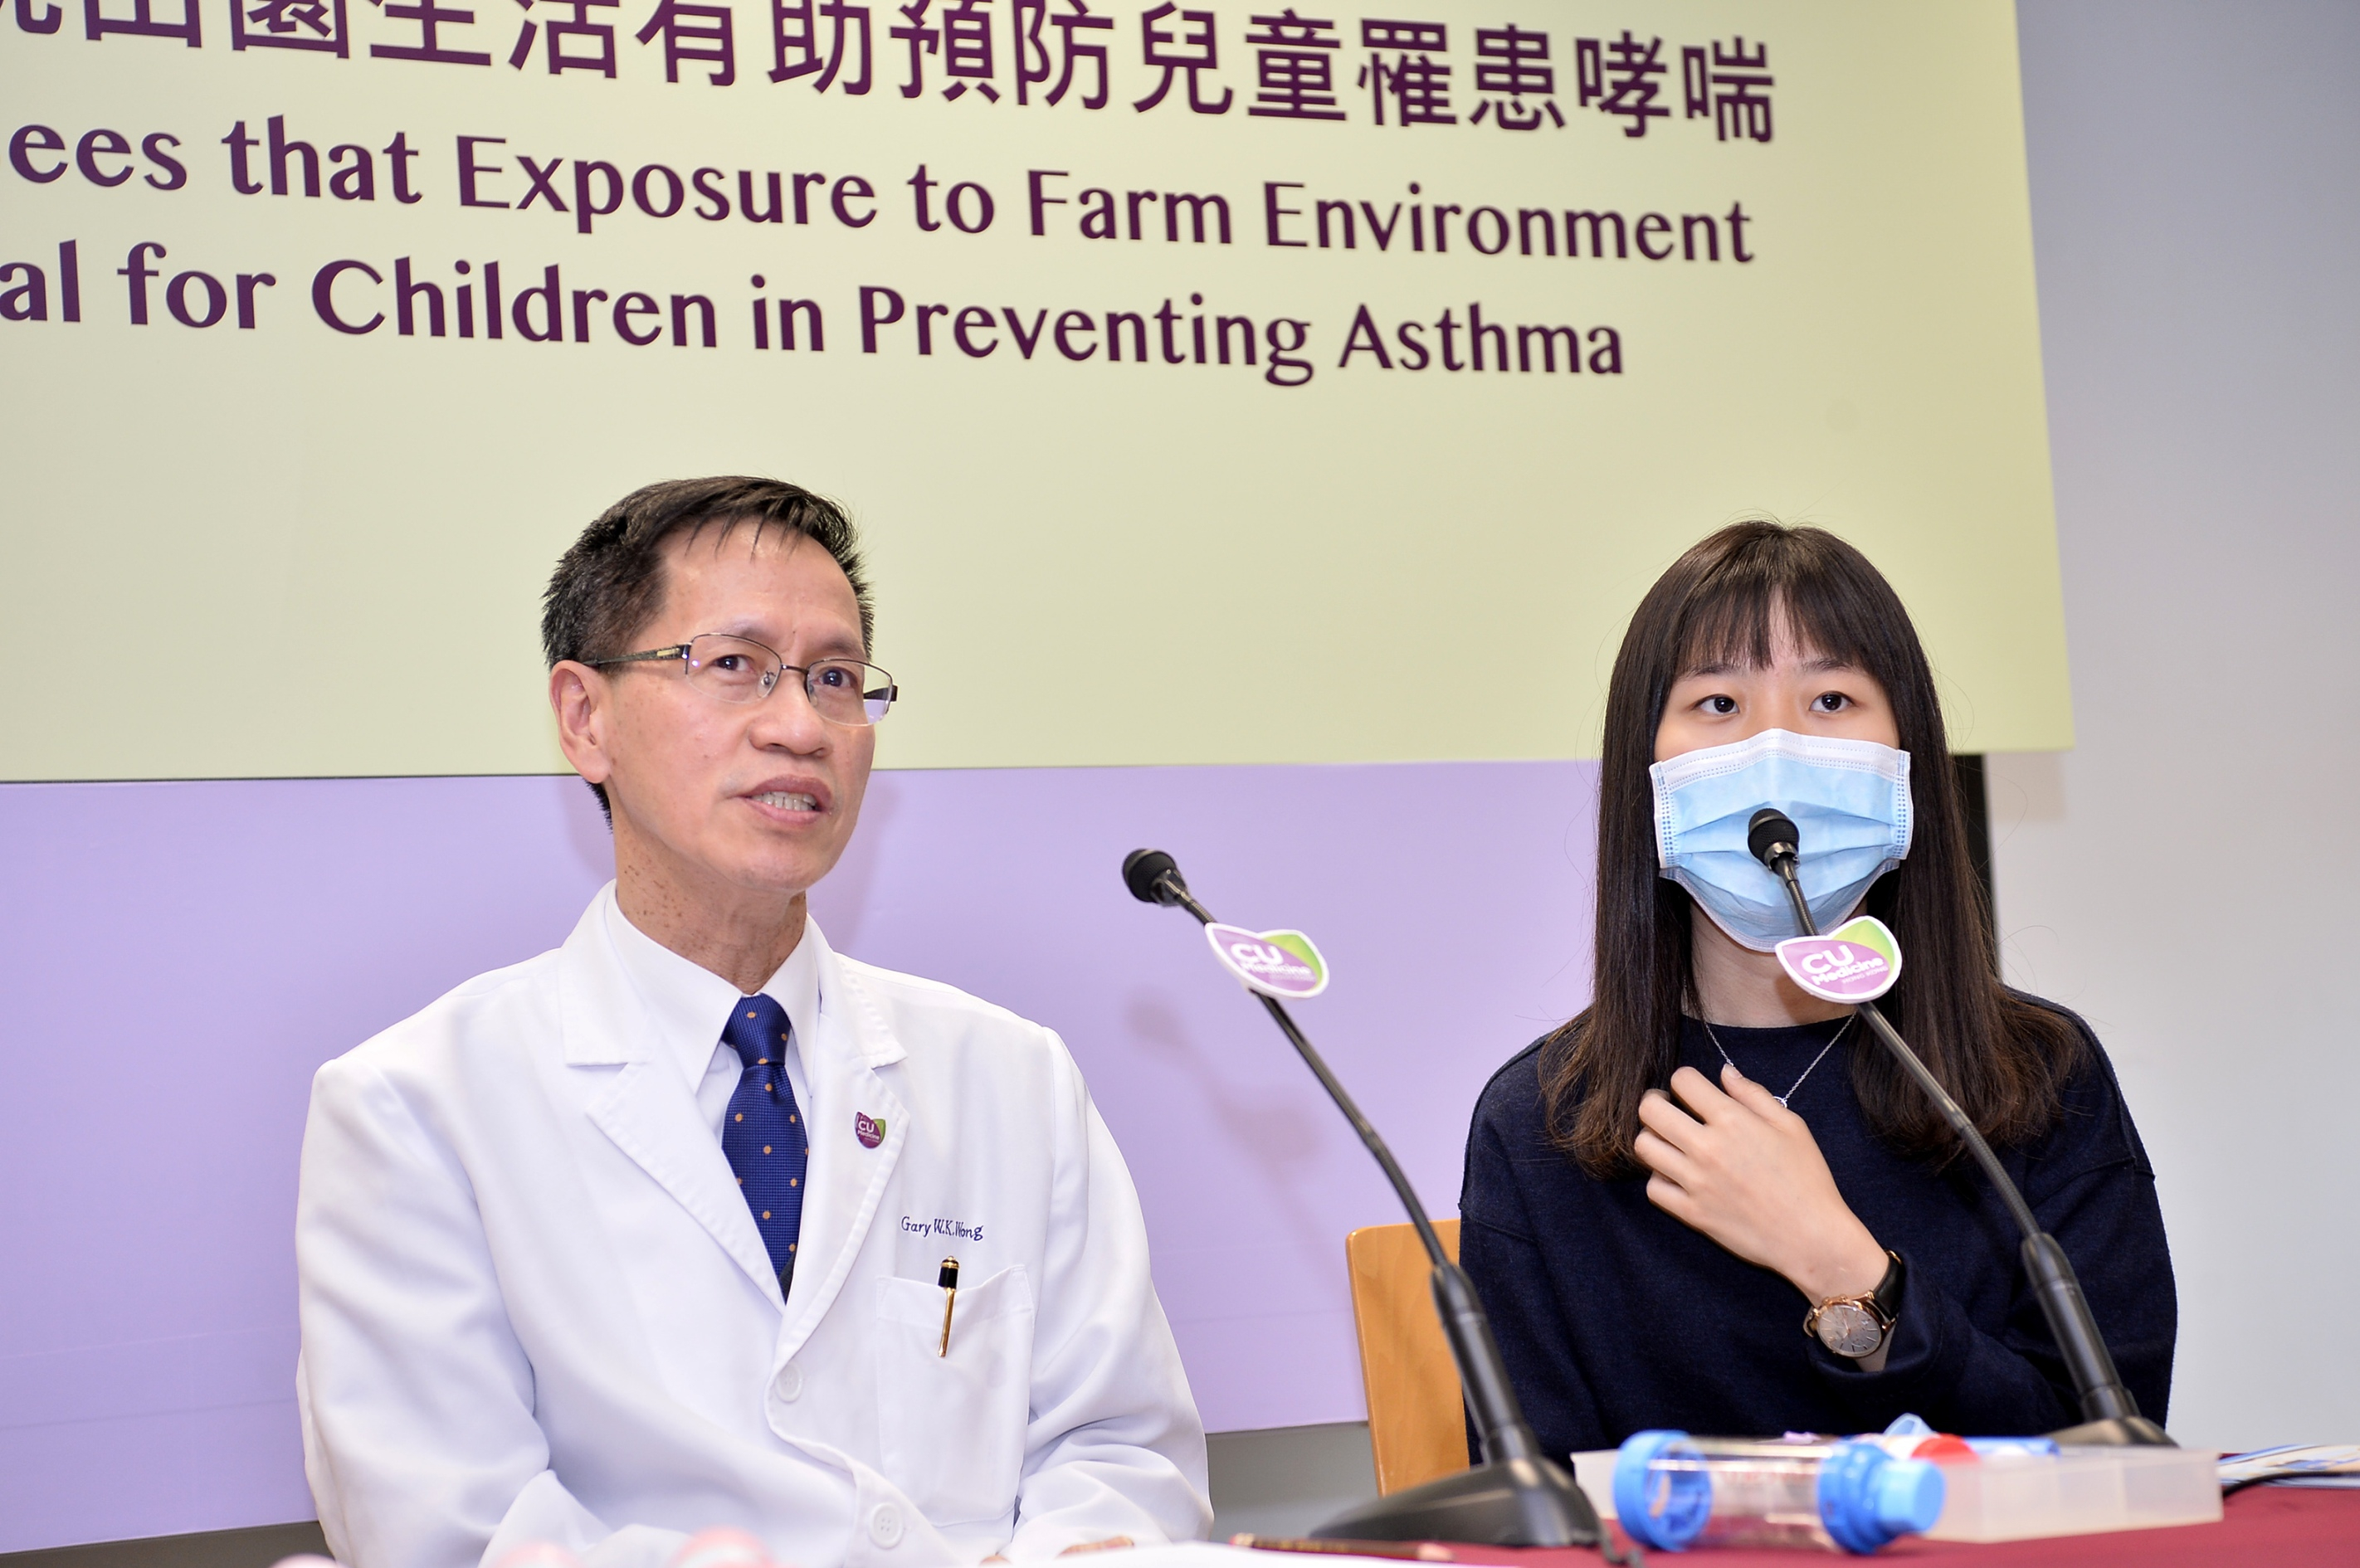 Summey (right) was admitted to the intensive care unit for asthma when she was 3 years old. She then followed the doctor's instructions to start swimming and now she has a good control of asthma.